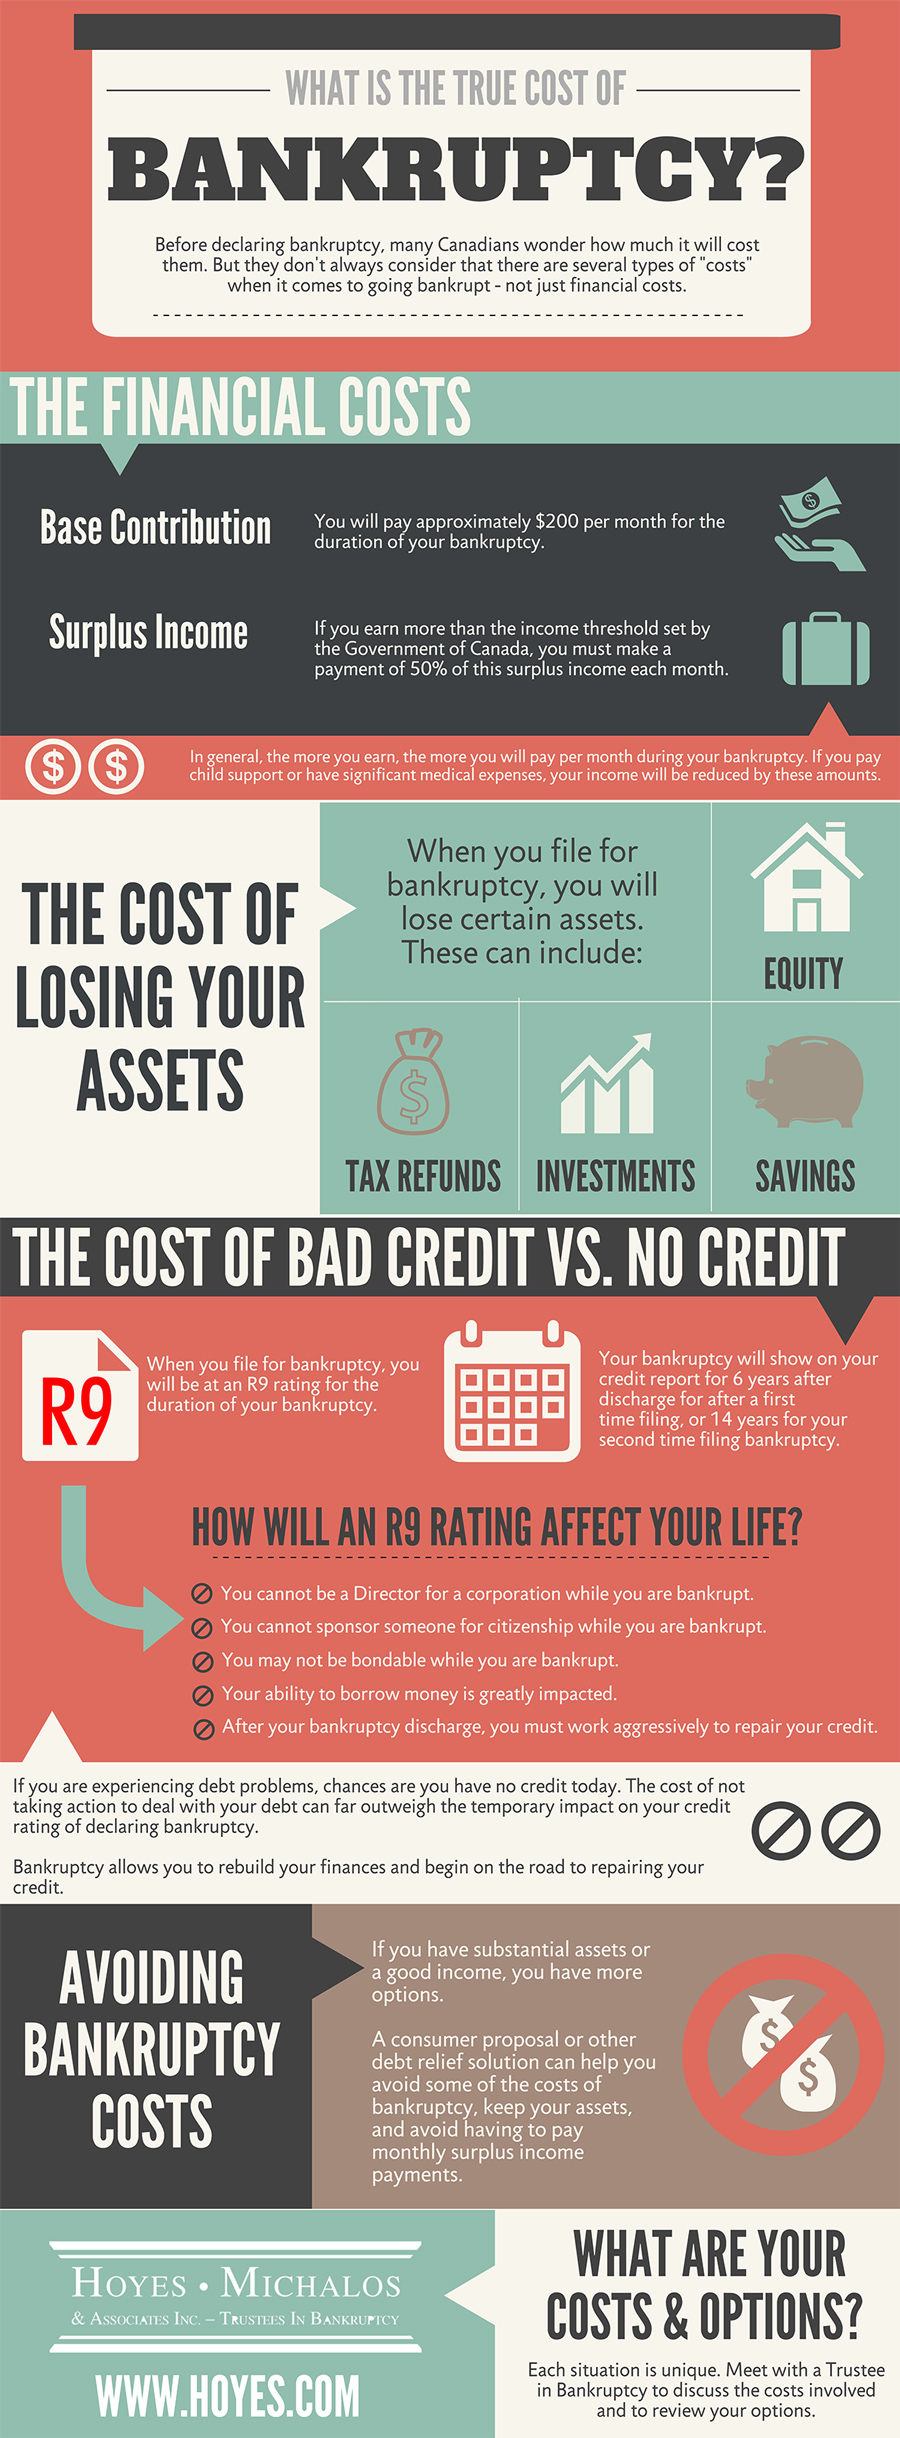 infographic: cost of bankruptcy